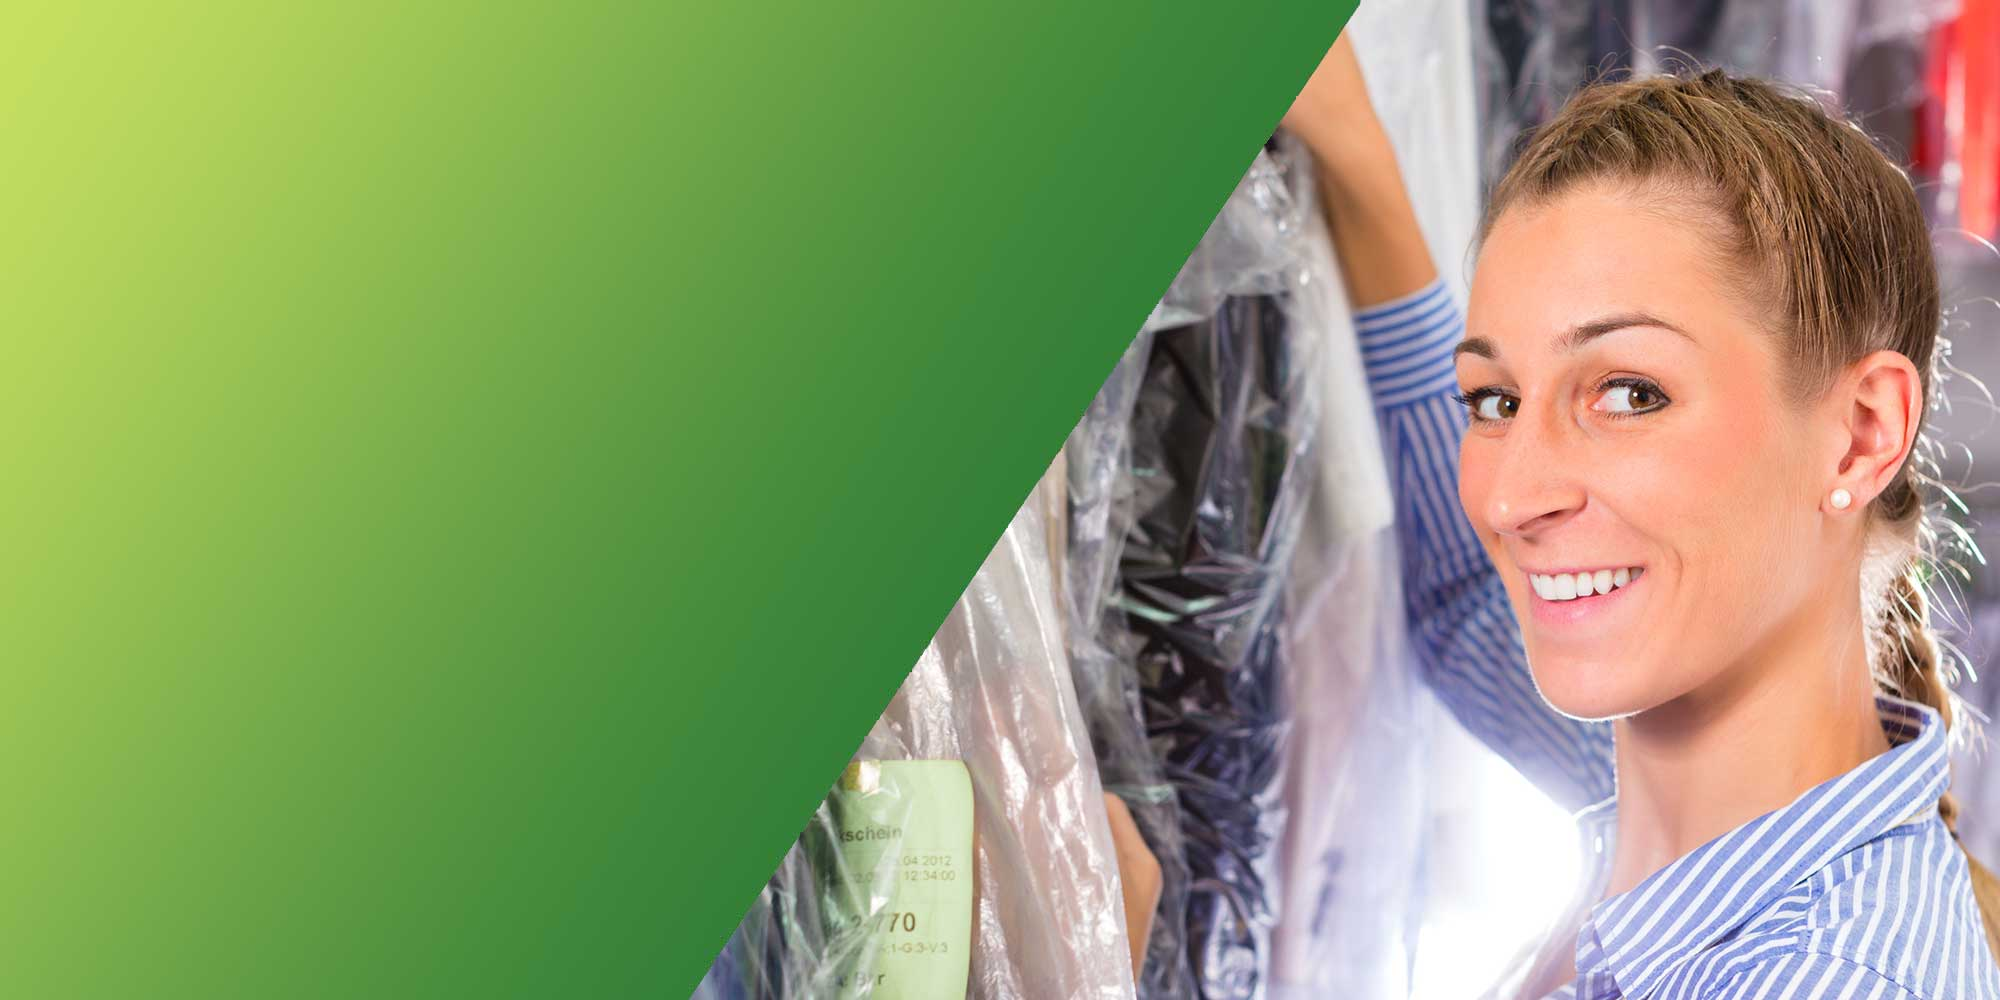 Shamrock Cleaners | Cleaning & Fabric Care in Tallassee